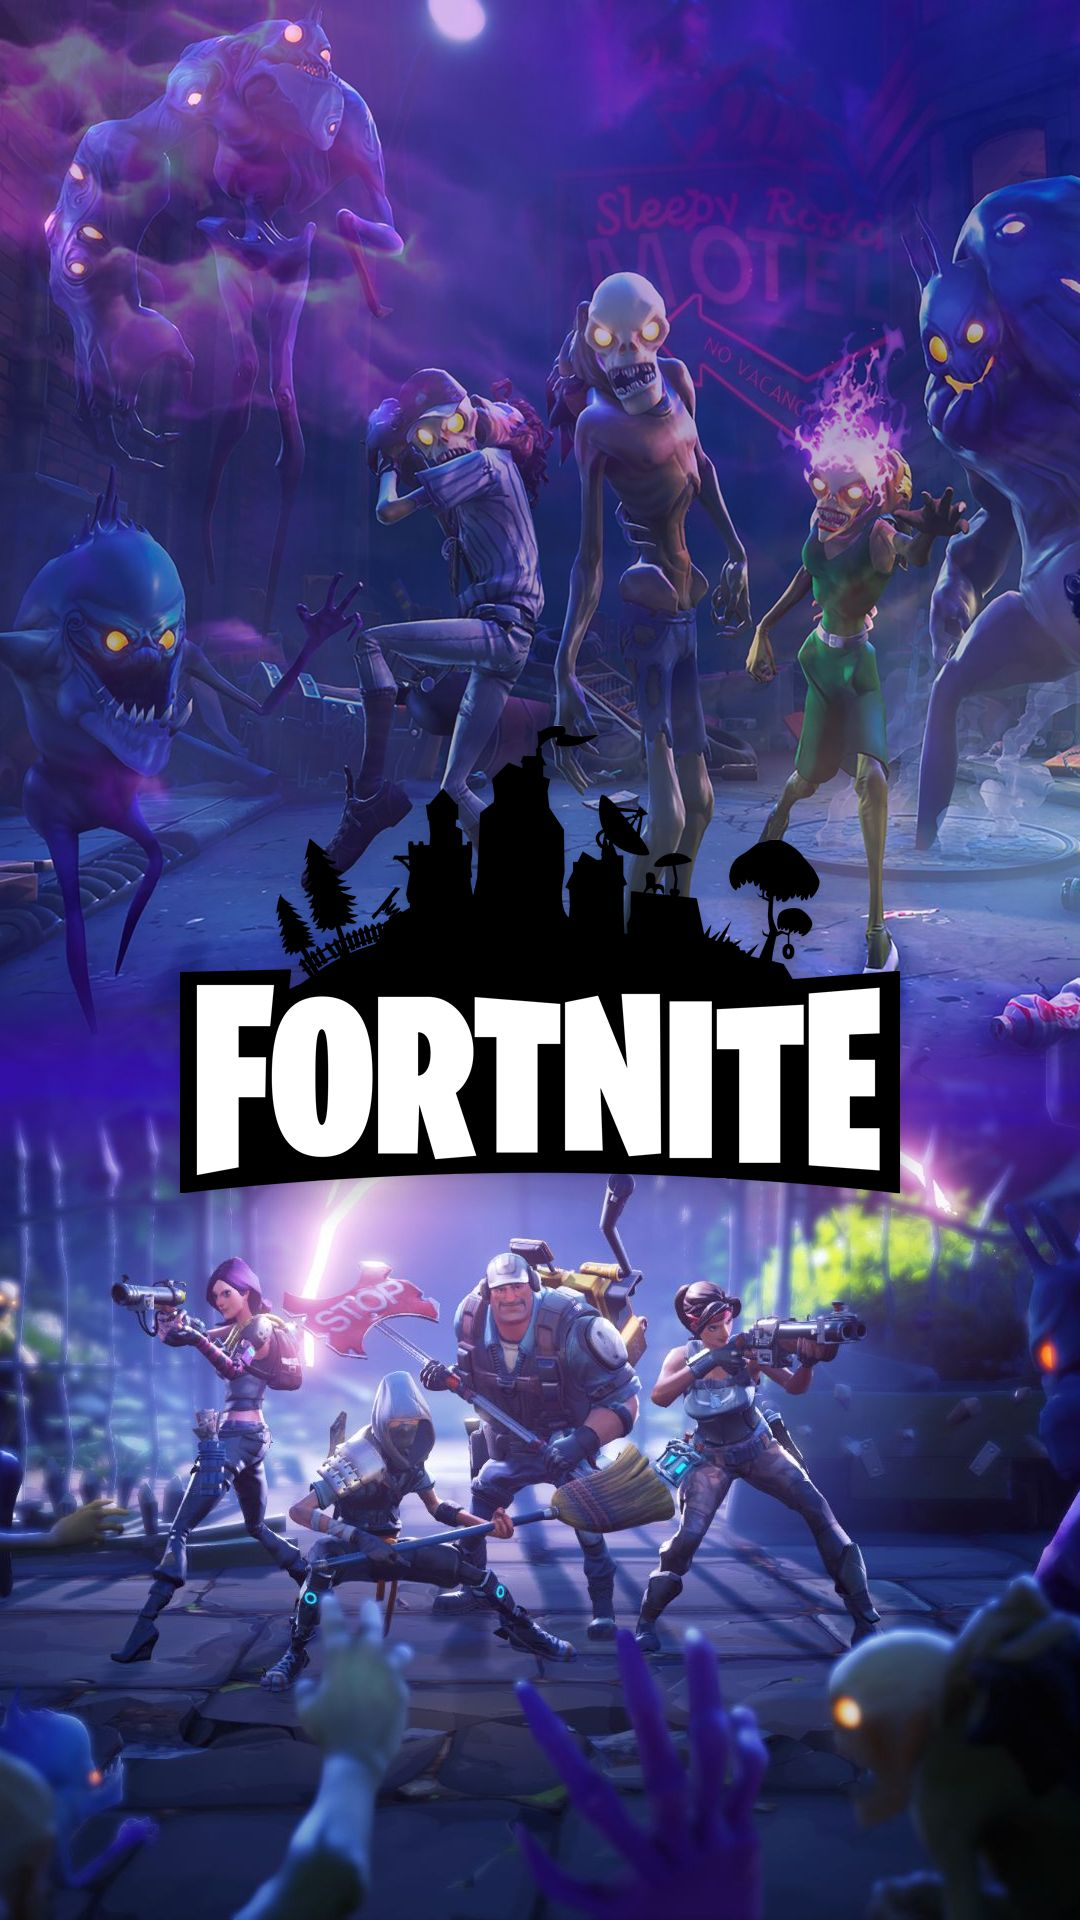 fortnite wallpaper telefonduvarkağıdı game